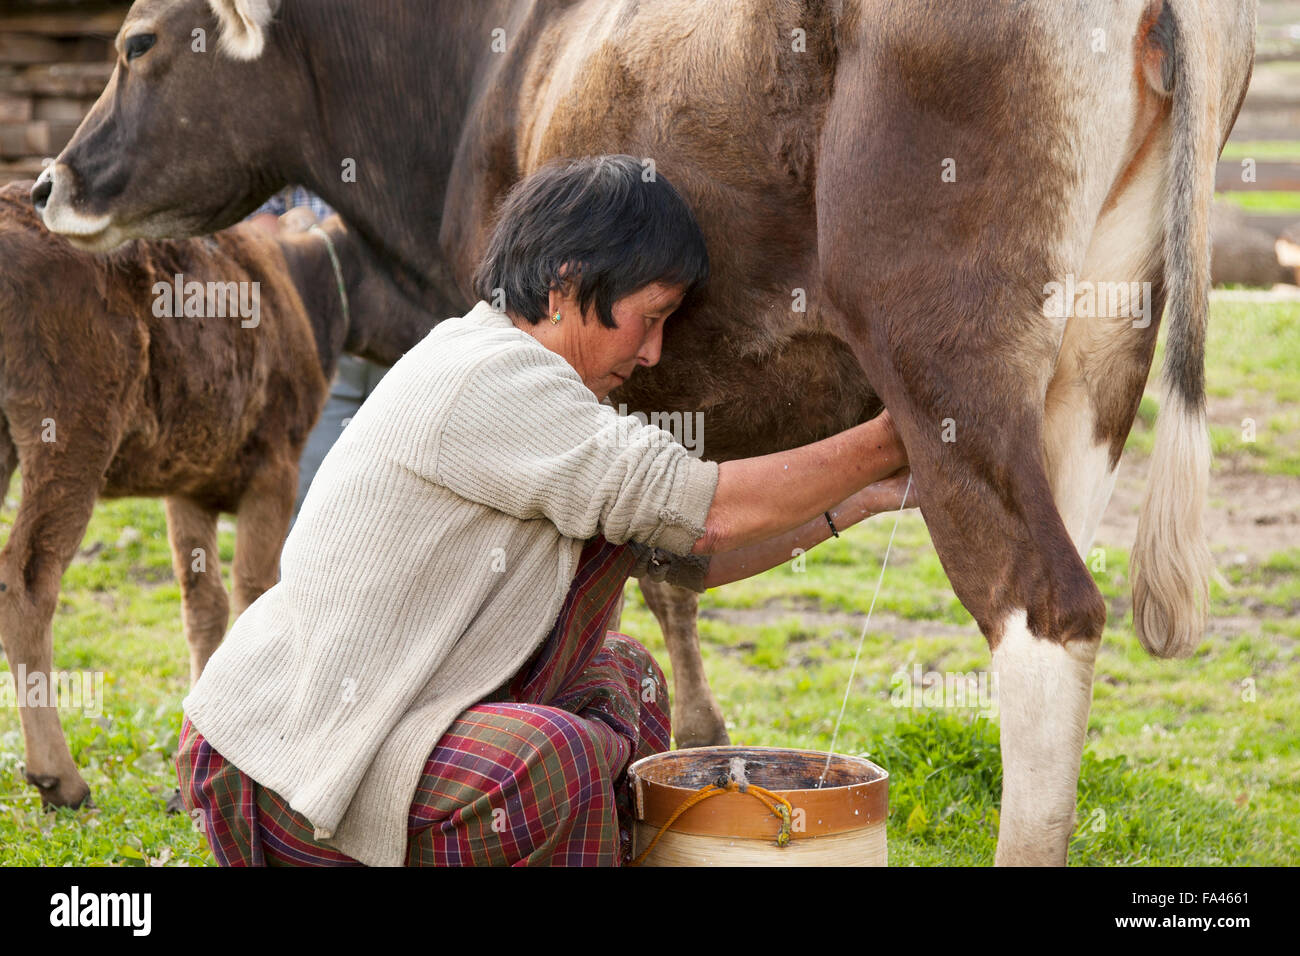 Milking a cow by hand. On a farm in the Phobjikha valley in Bhutan - Stock Image